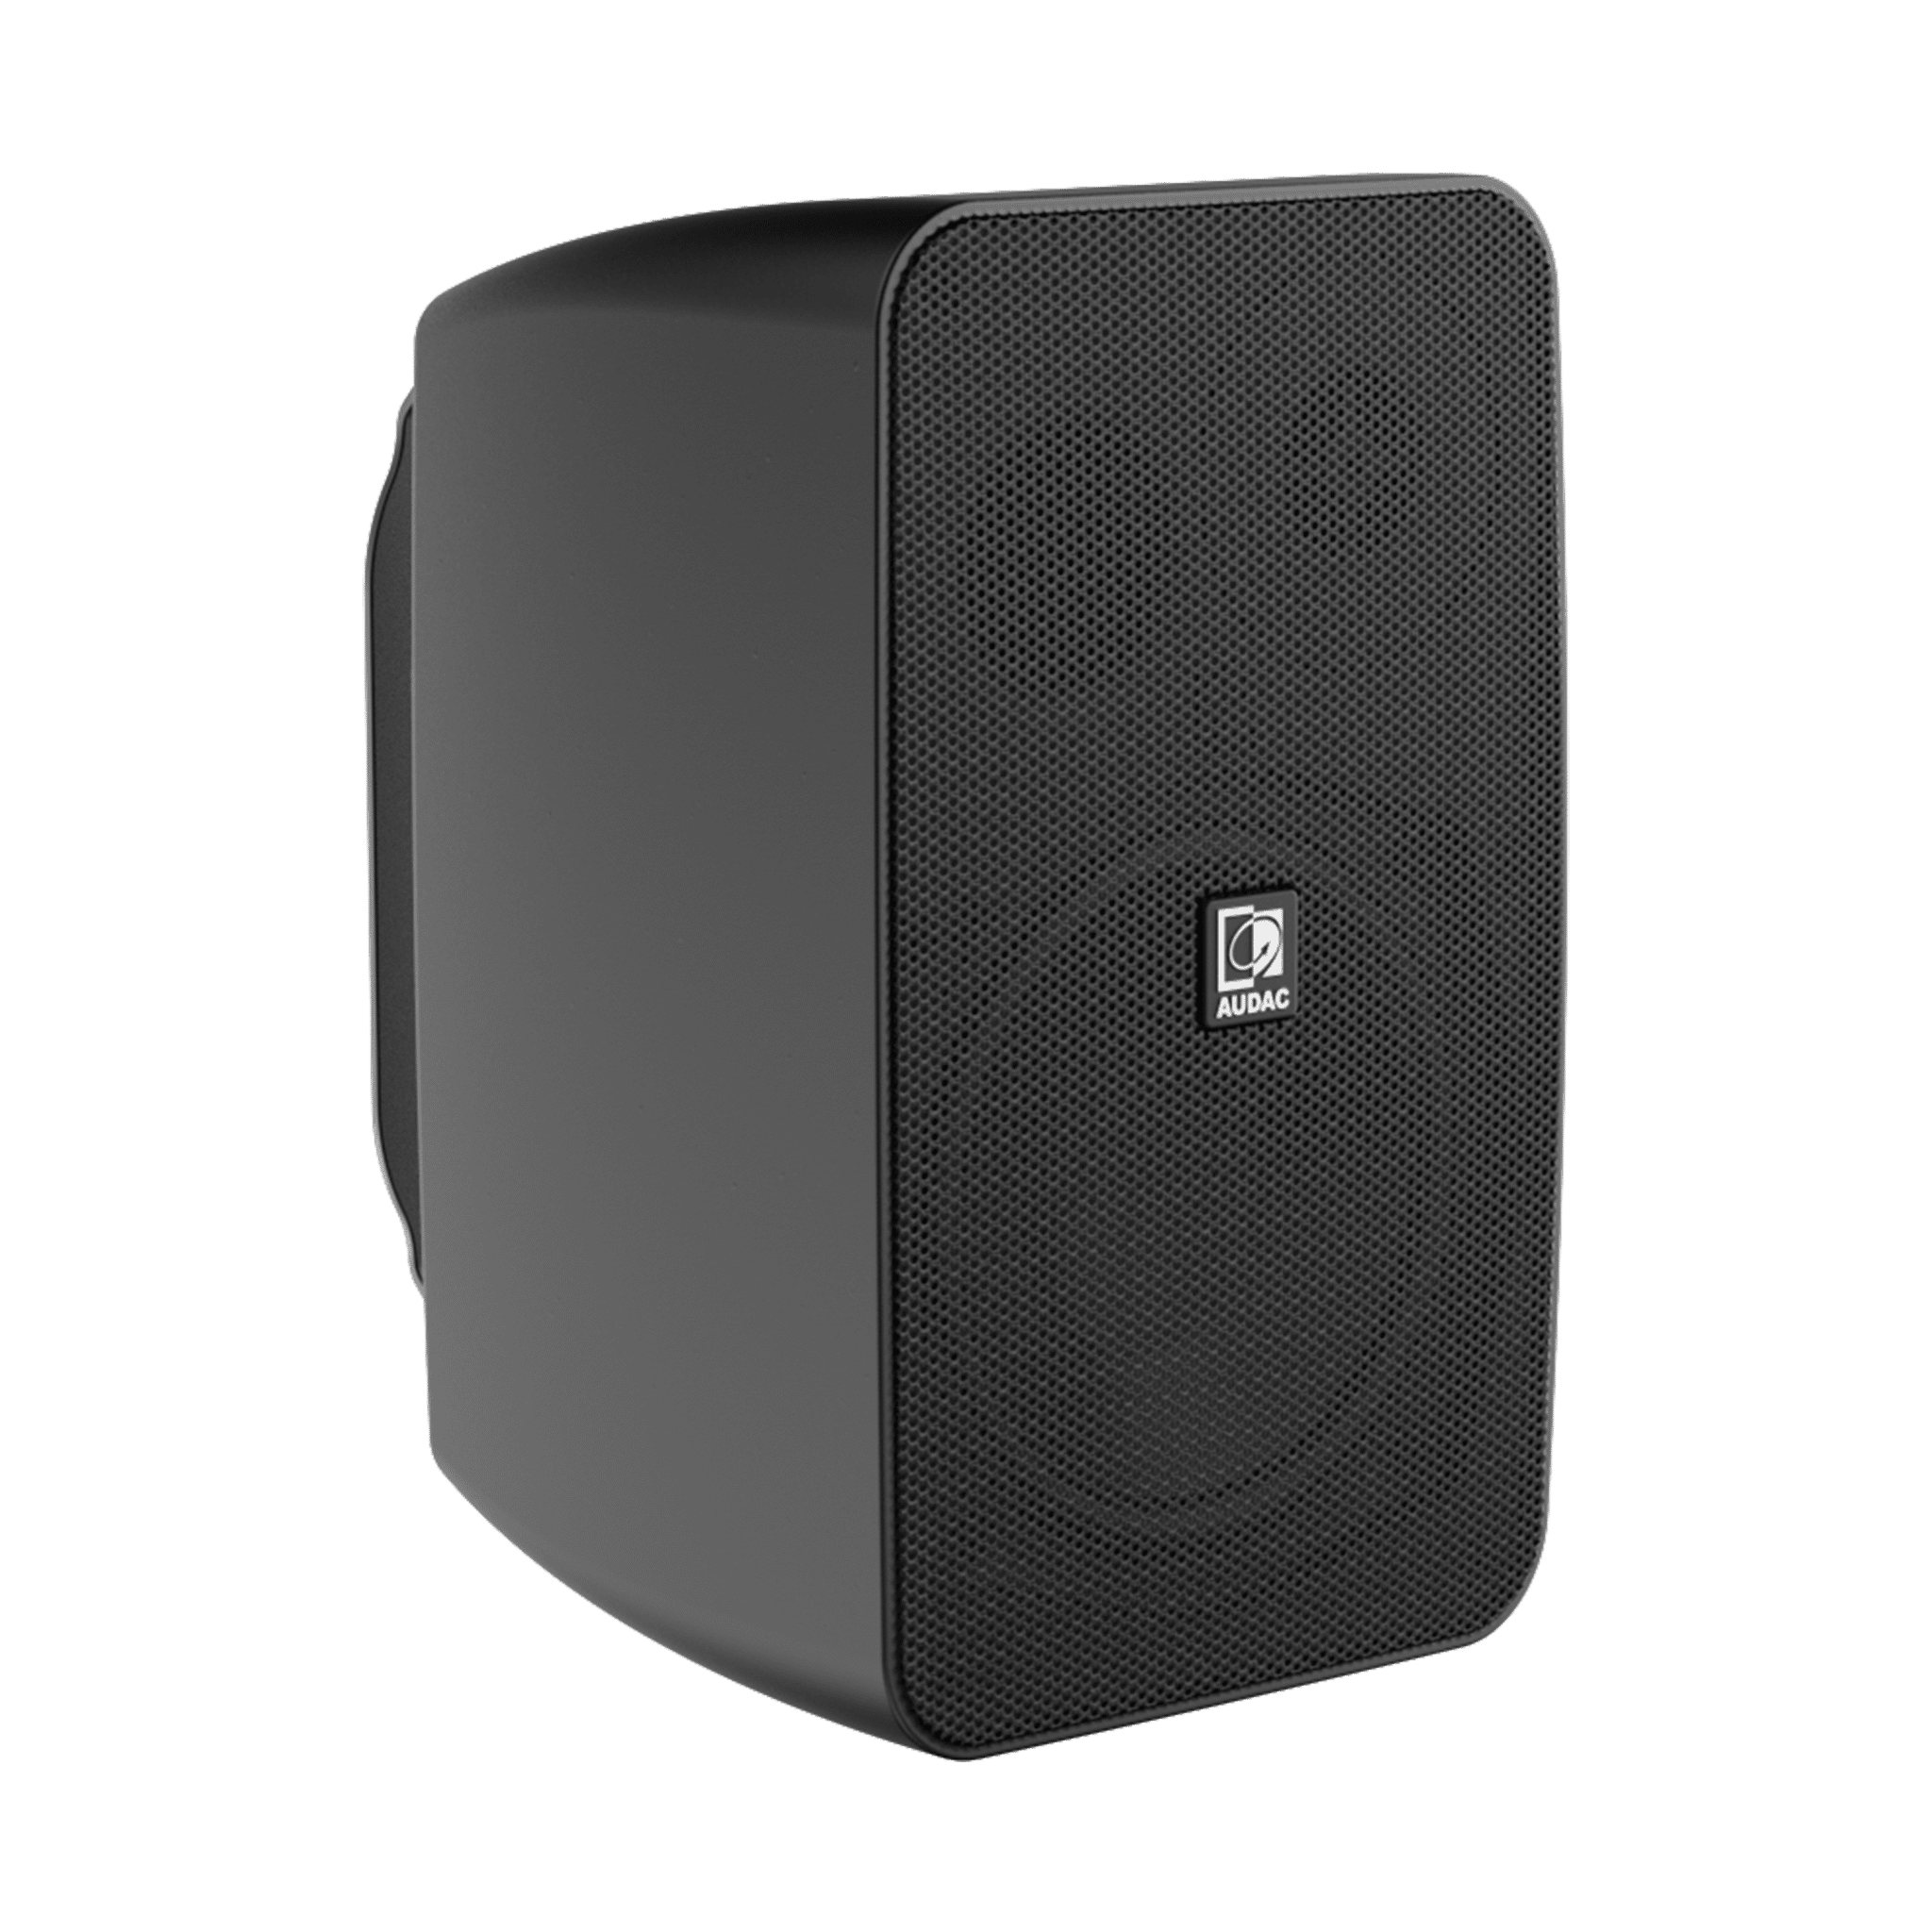 ARES5A - 2-Way Stereo active speaker system - 2 x 40W